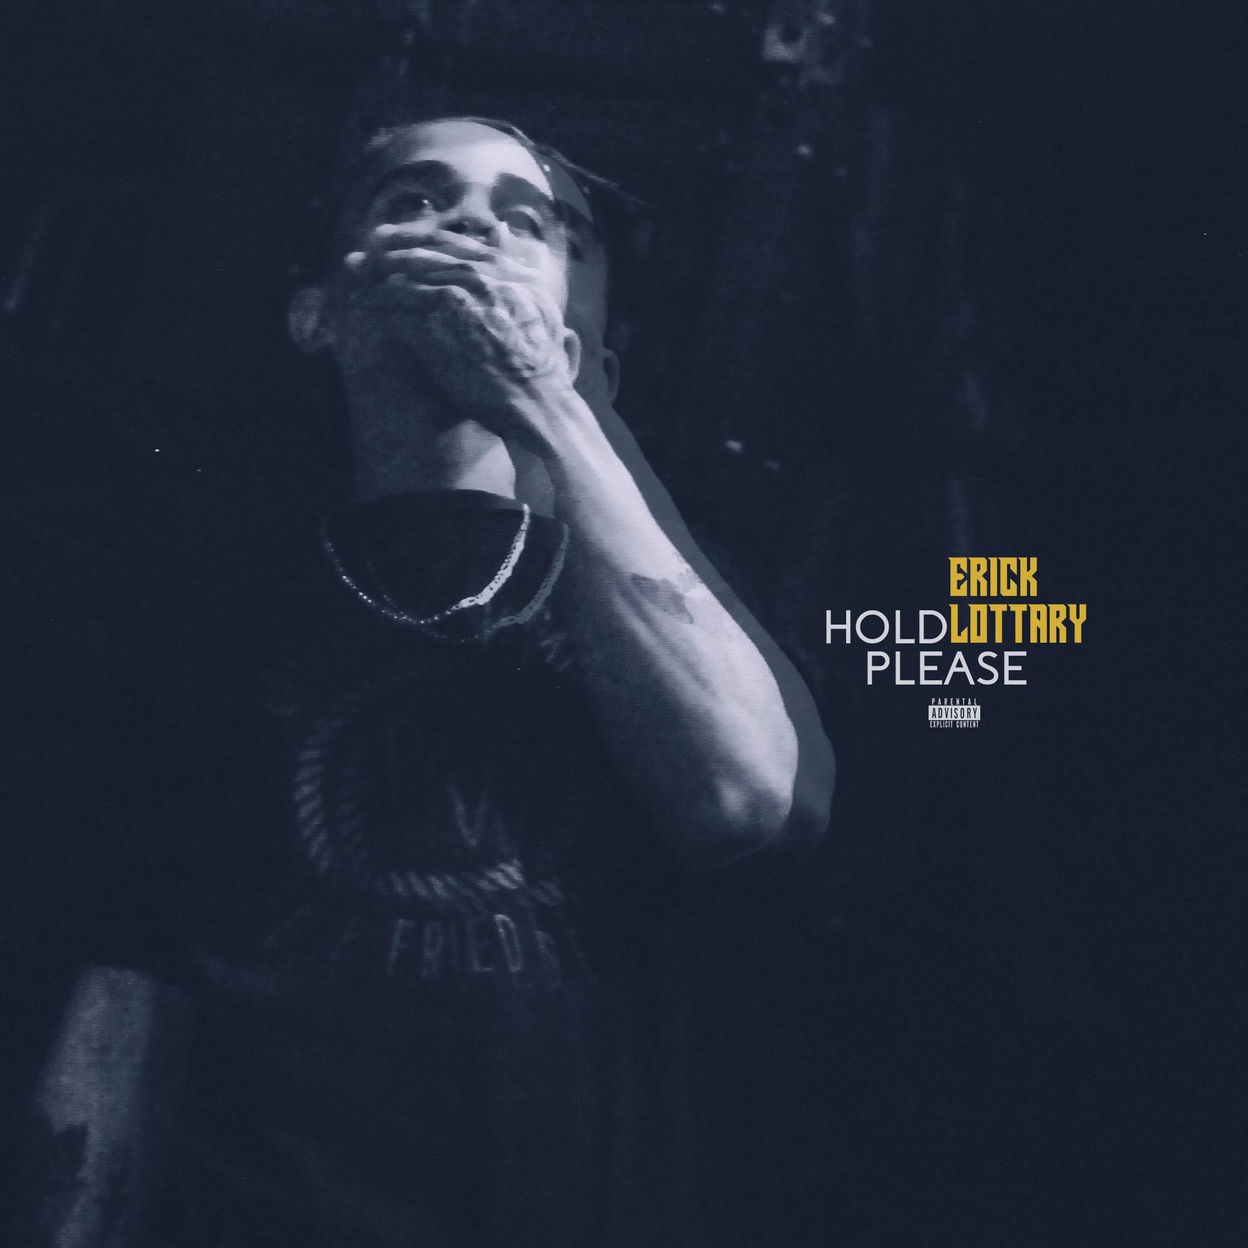 erick-lottary-hold-please-ep